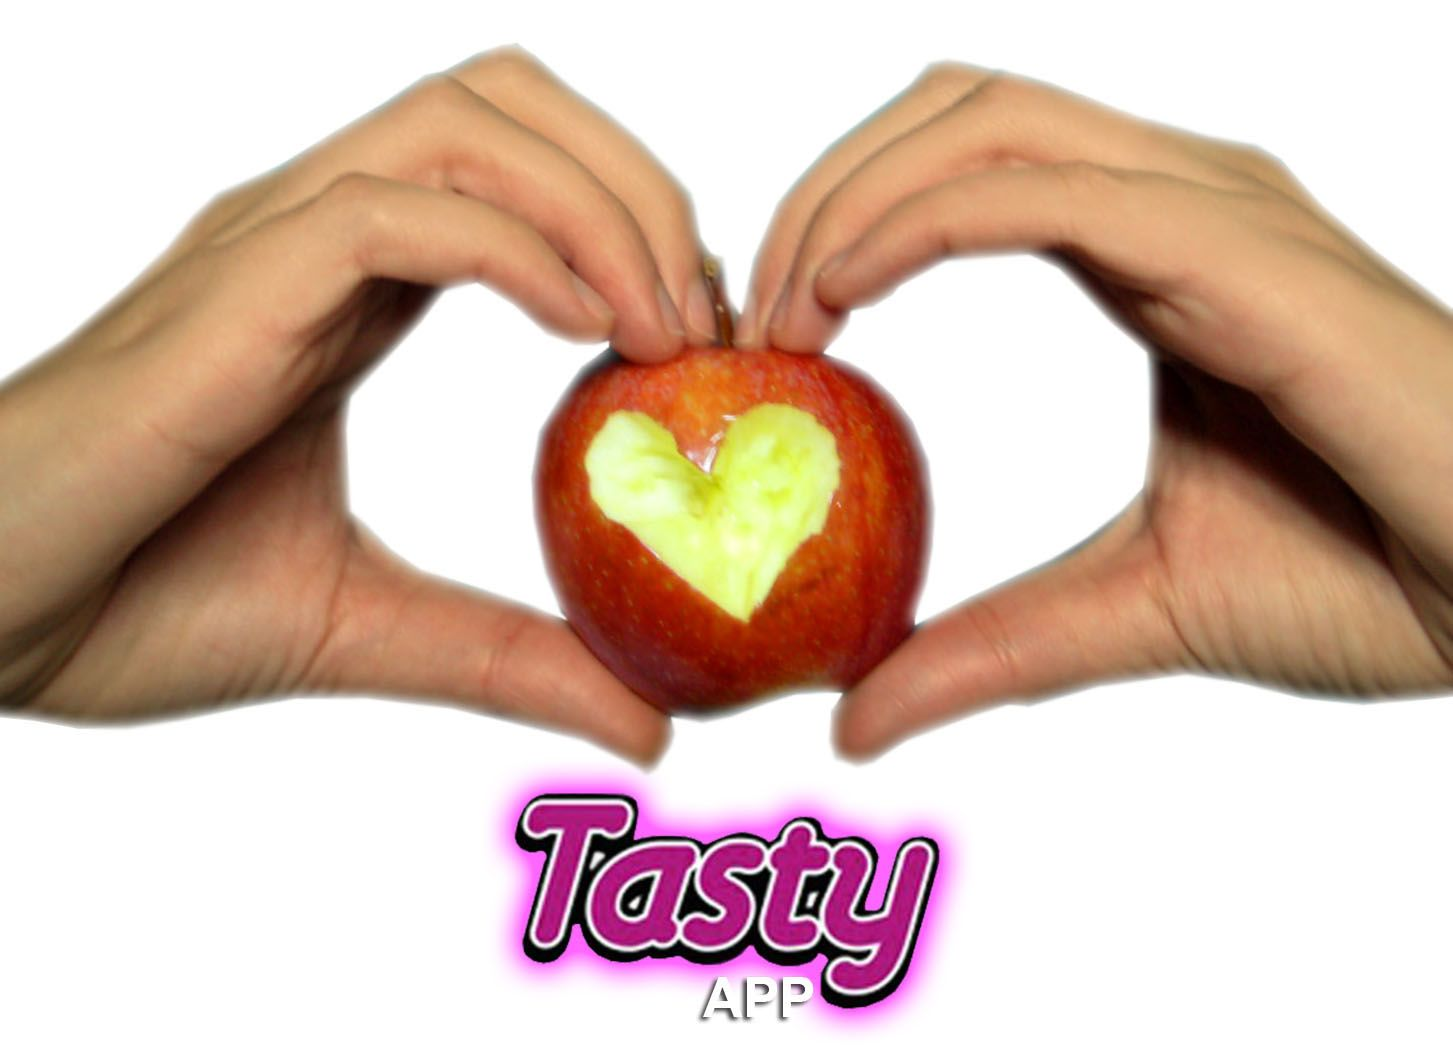 Experience the deliciousness of Tasty Pleasures APP